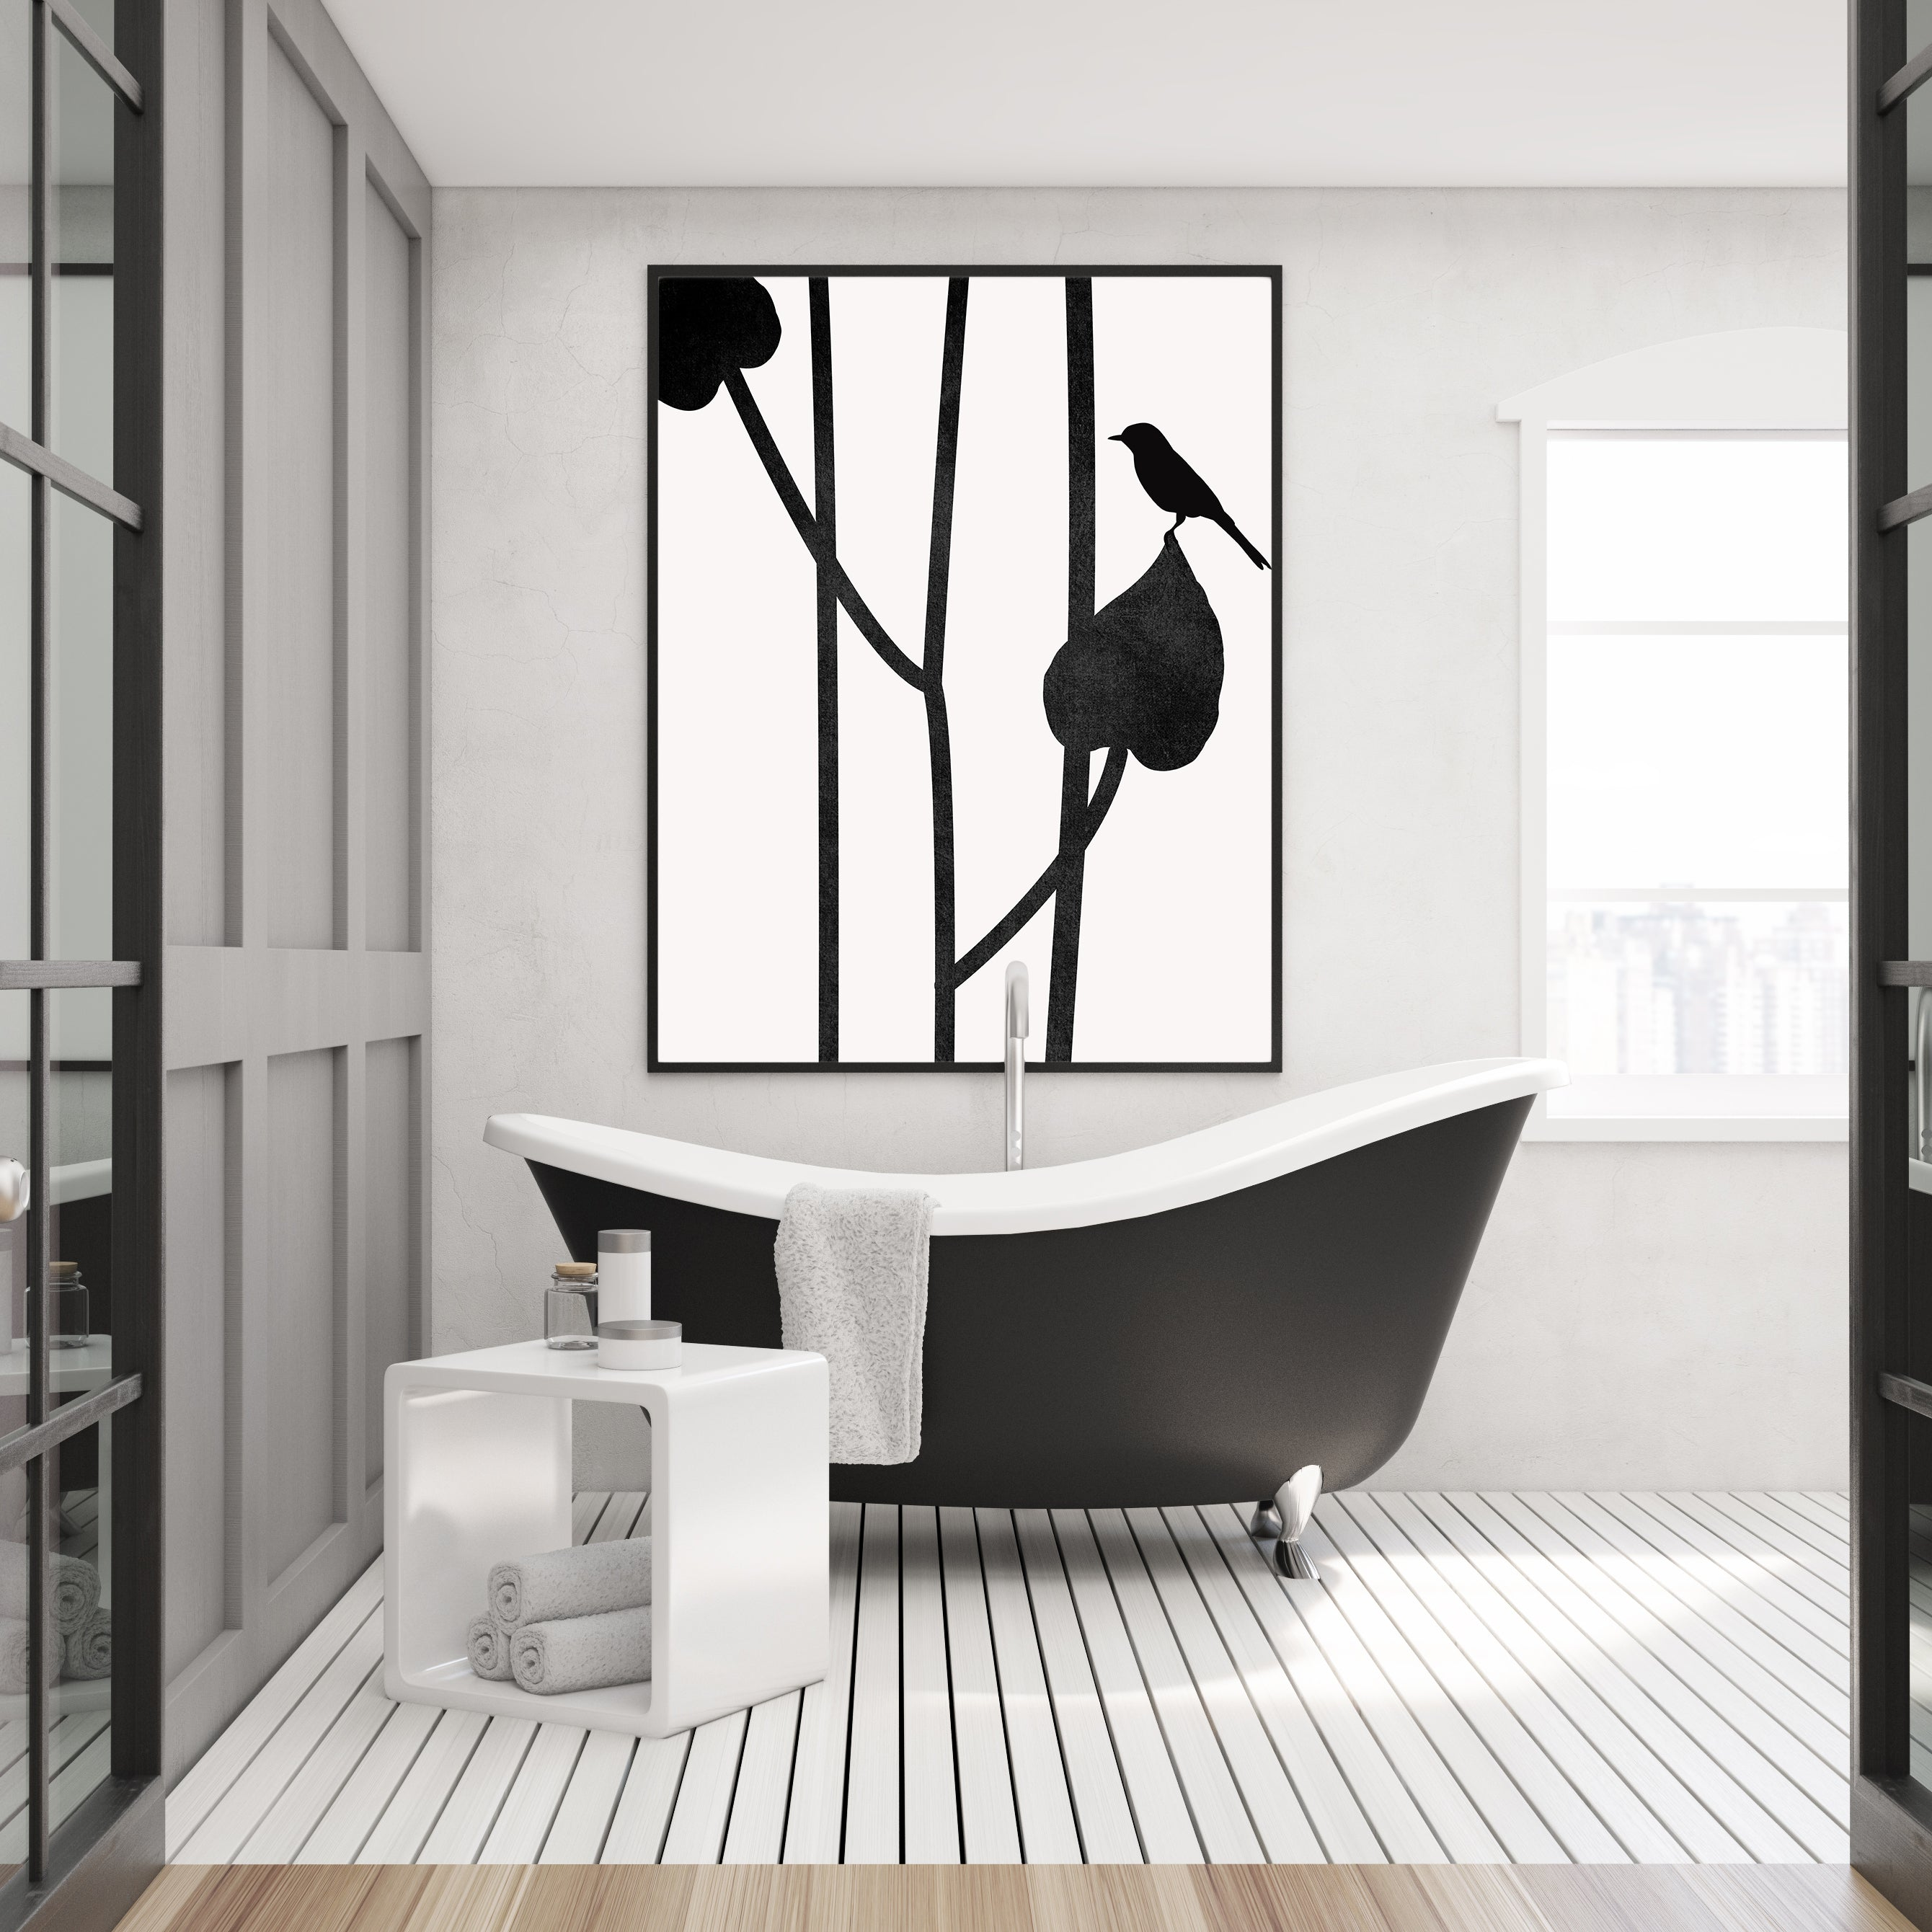 Minimalist graphic print by Kubistika, with a bird on black leaves, on grey background; in bathroom